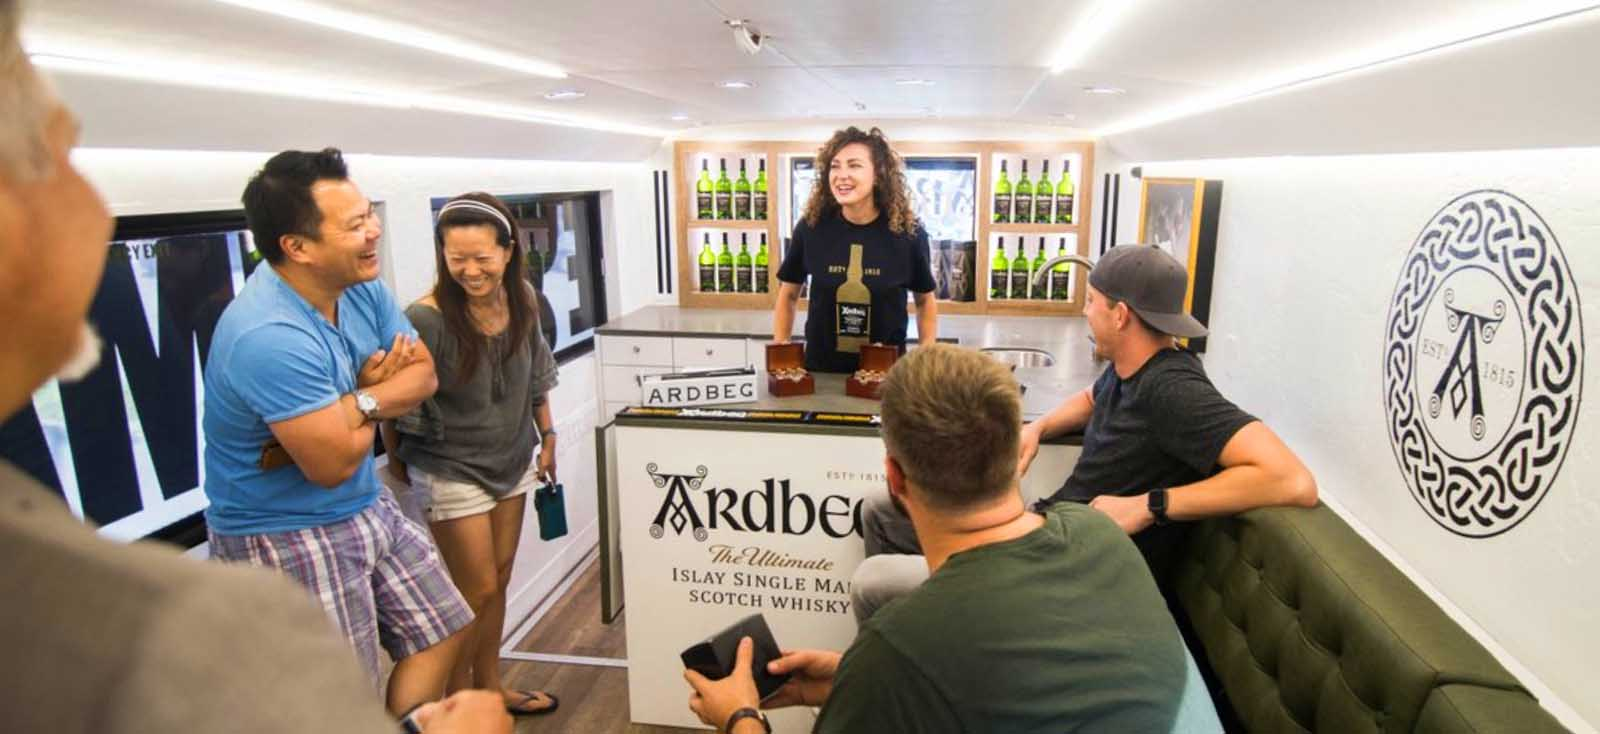 ardbeg-escape-room-1.jpg